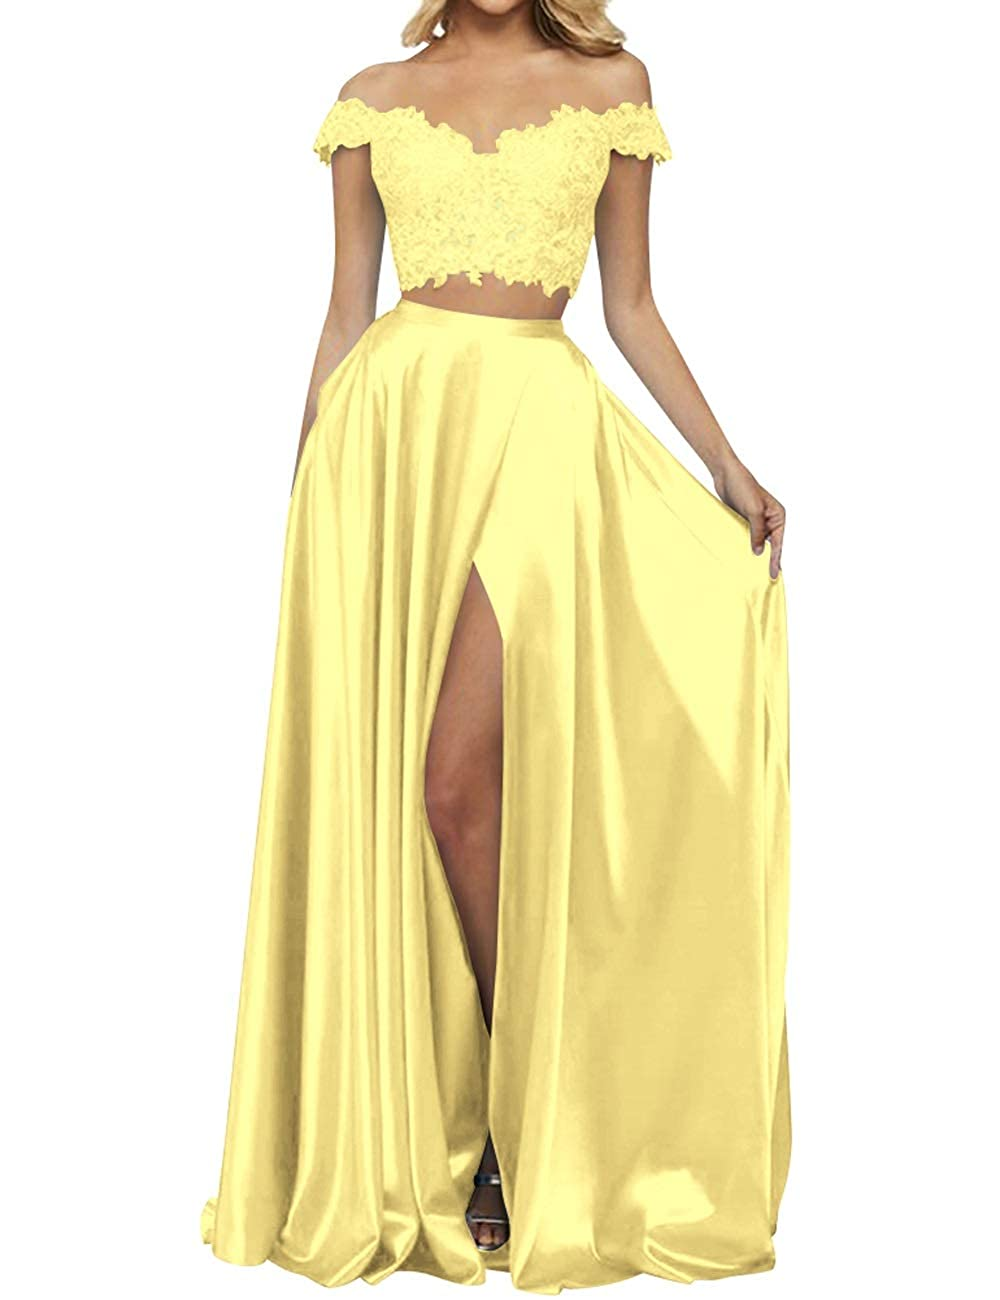 Daffodil MorySong Women's 2 Piece Lace Satin High Split Off The Shoulder Prom Evening Dress